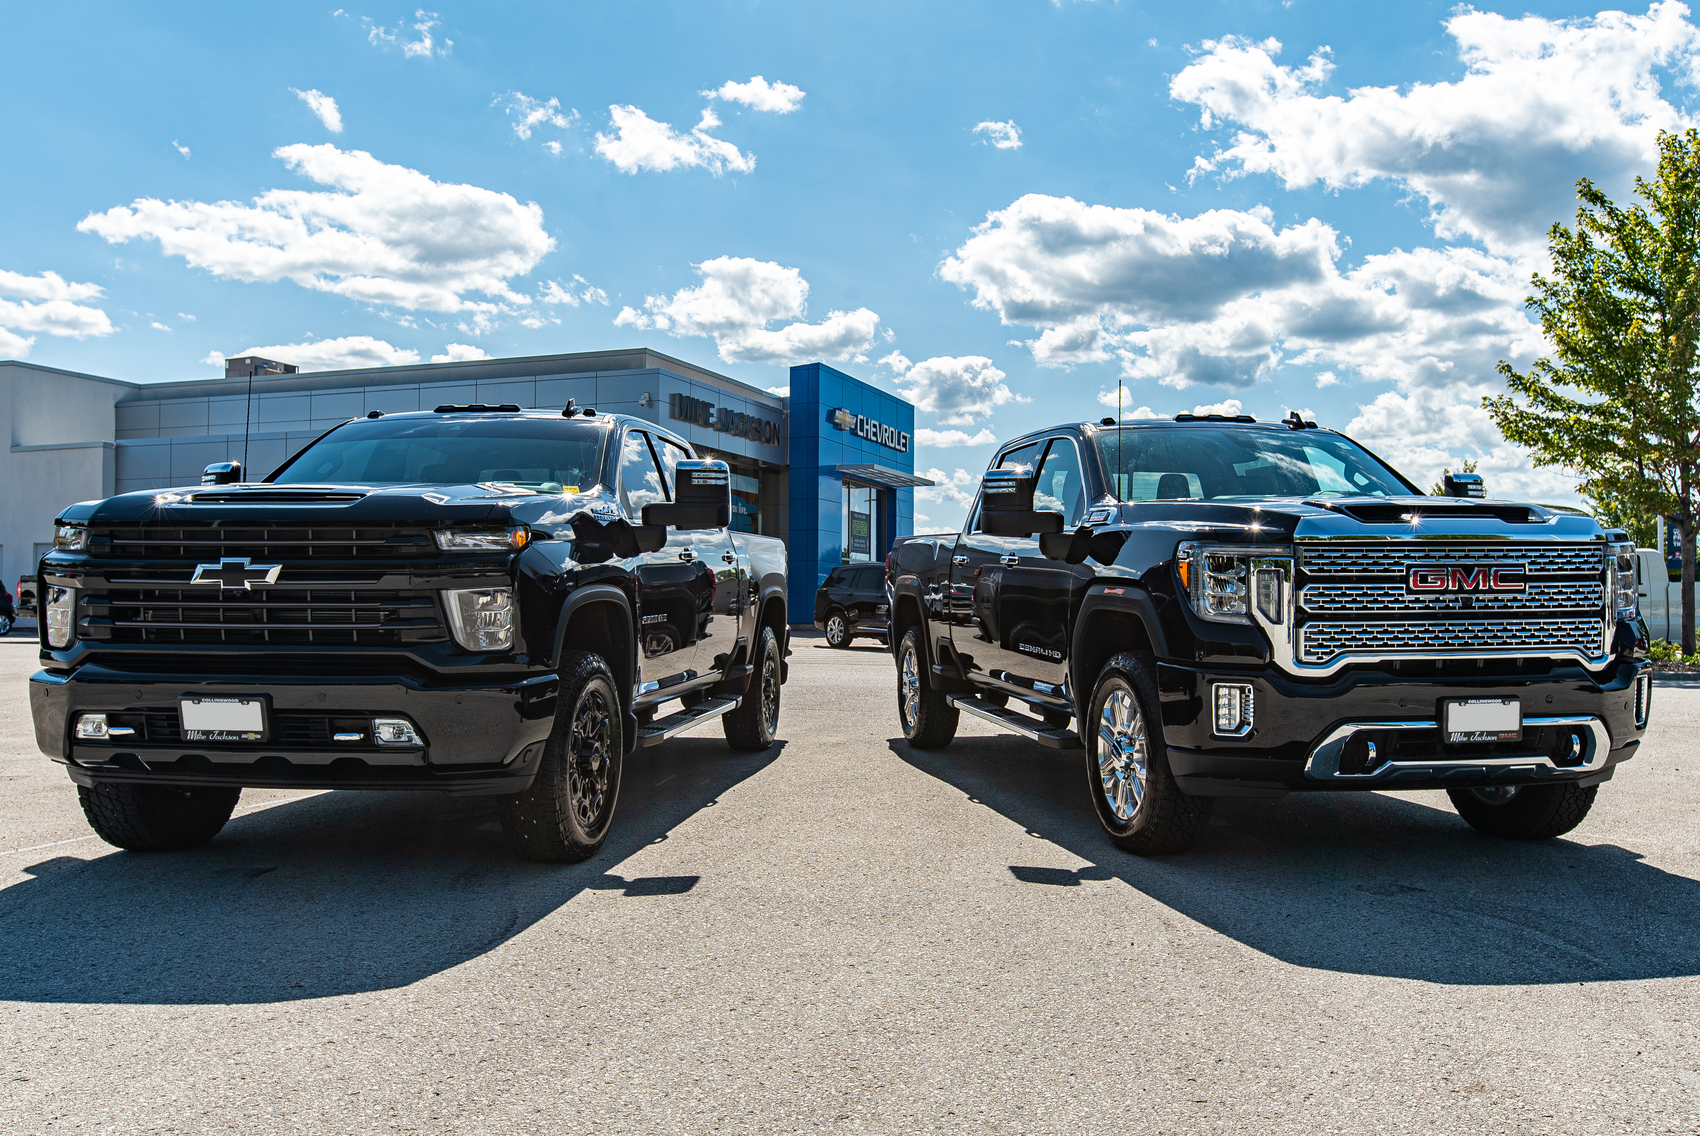 2020 GMC and Chevy Truck in front of Mike Jackson